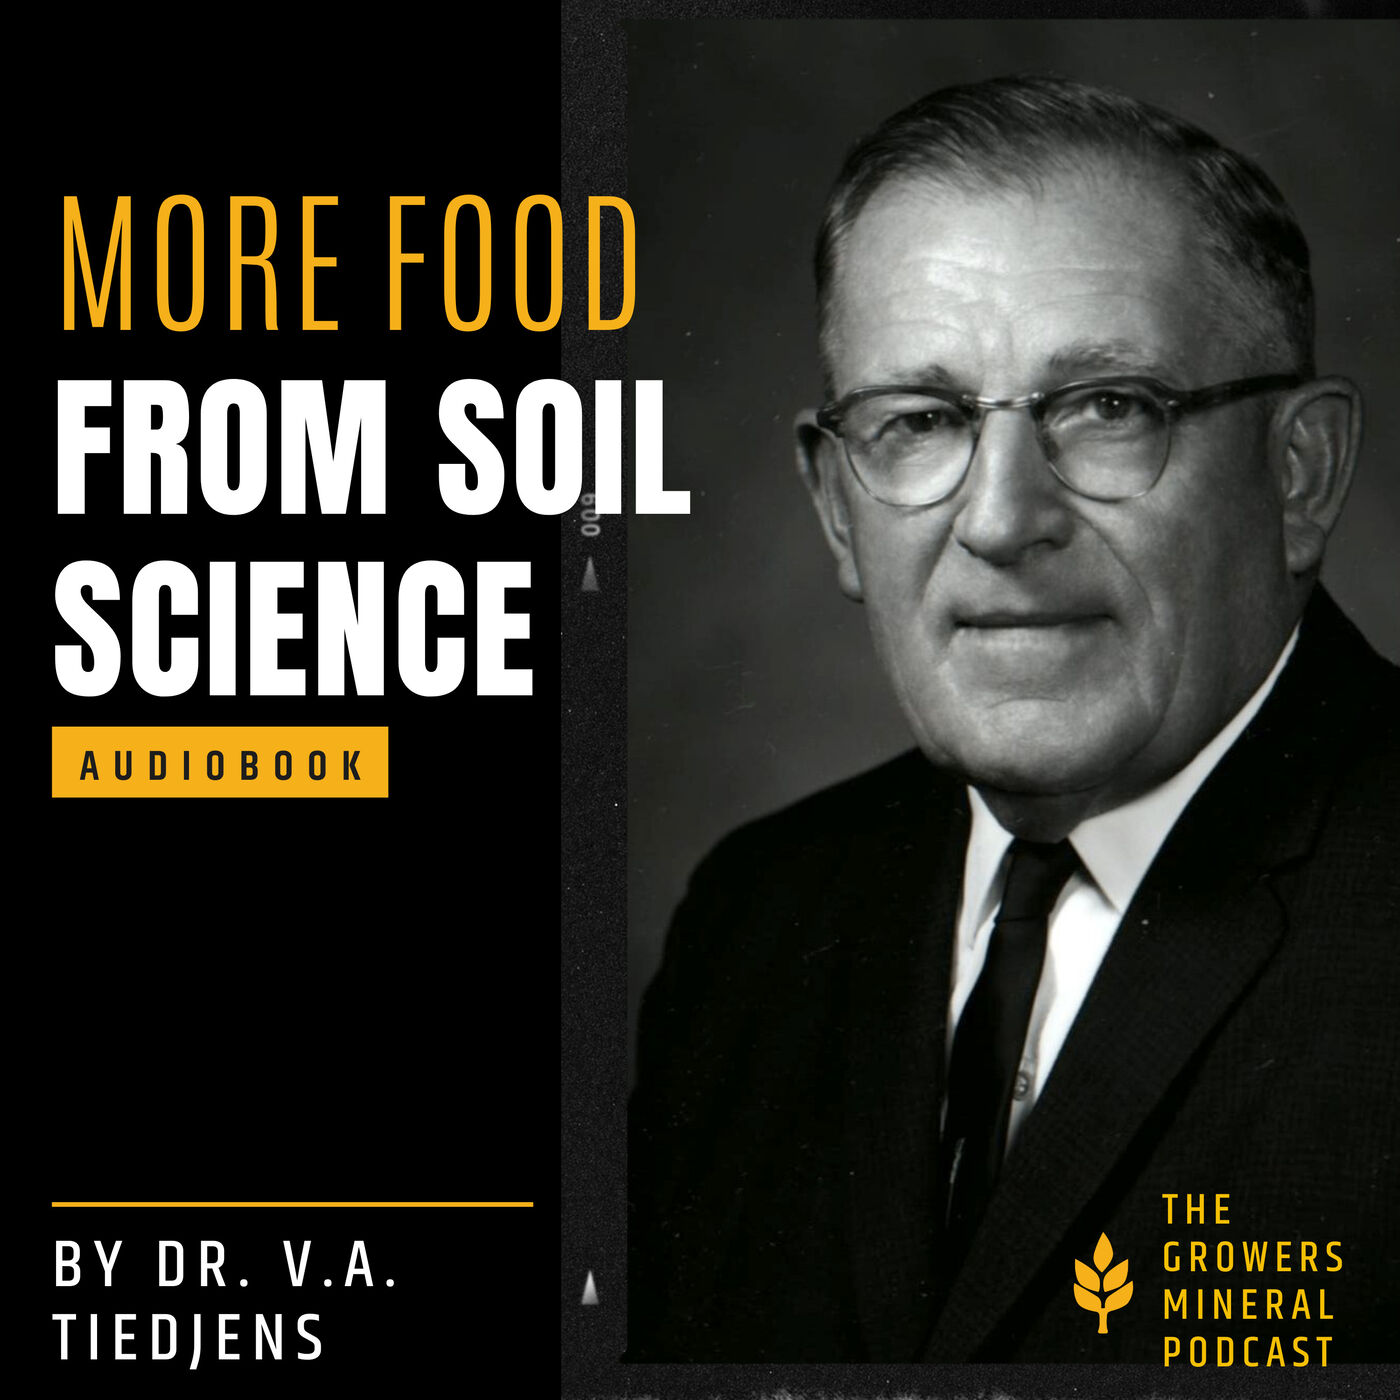 More Food from Soil Science Audiobook Ch. 12 - Subsoiling and the Growth of Crops